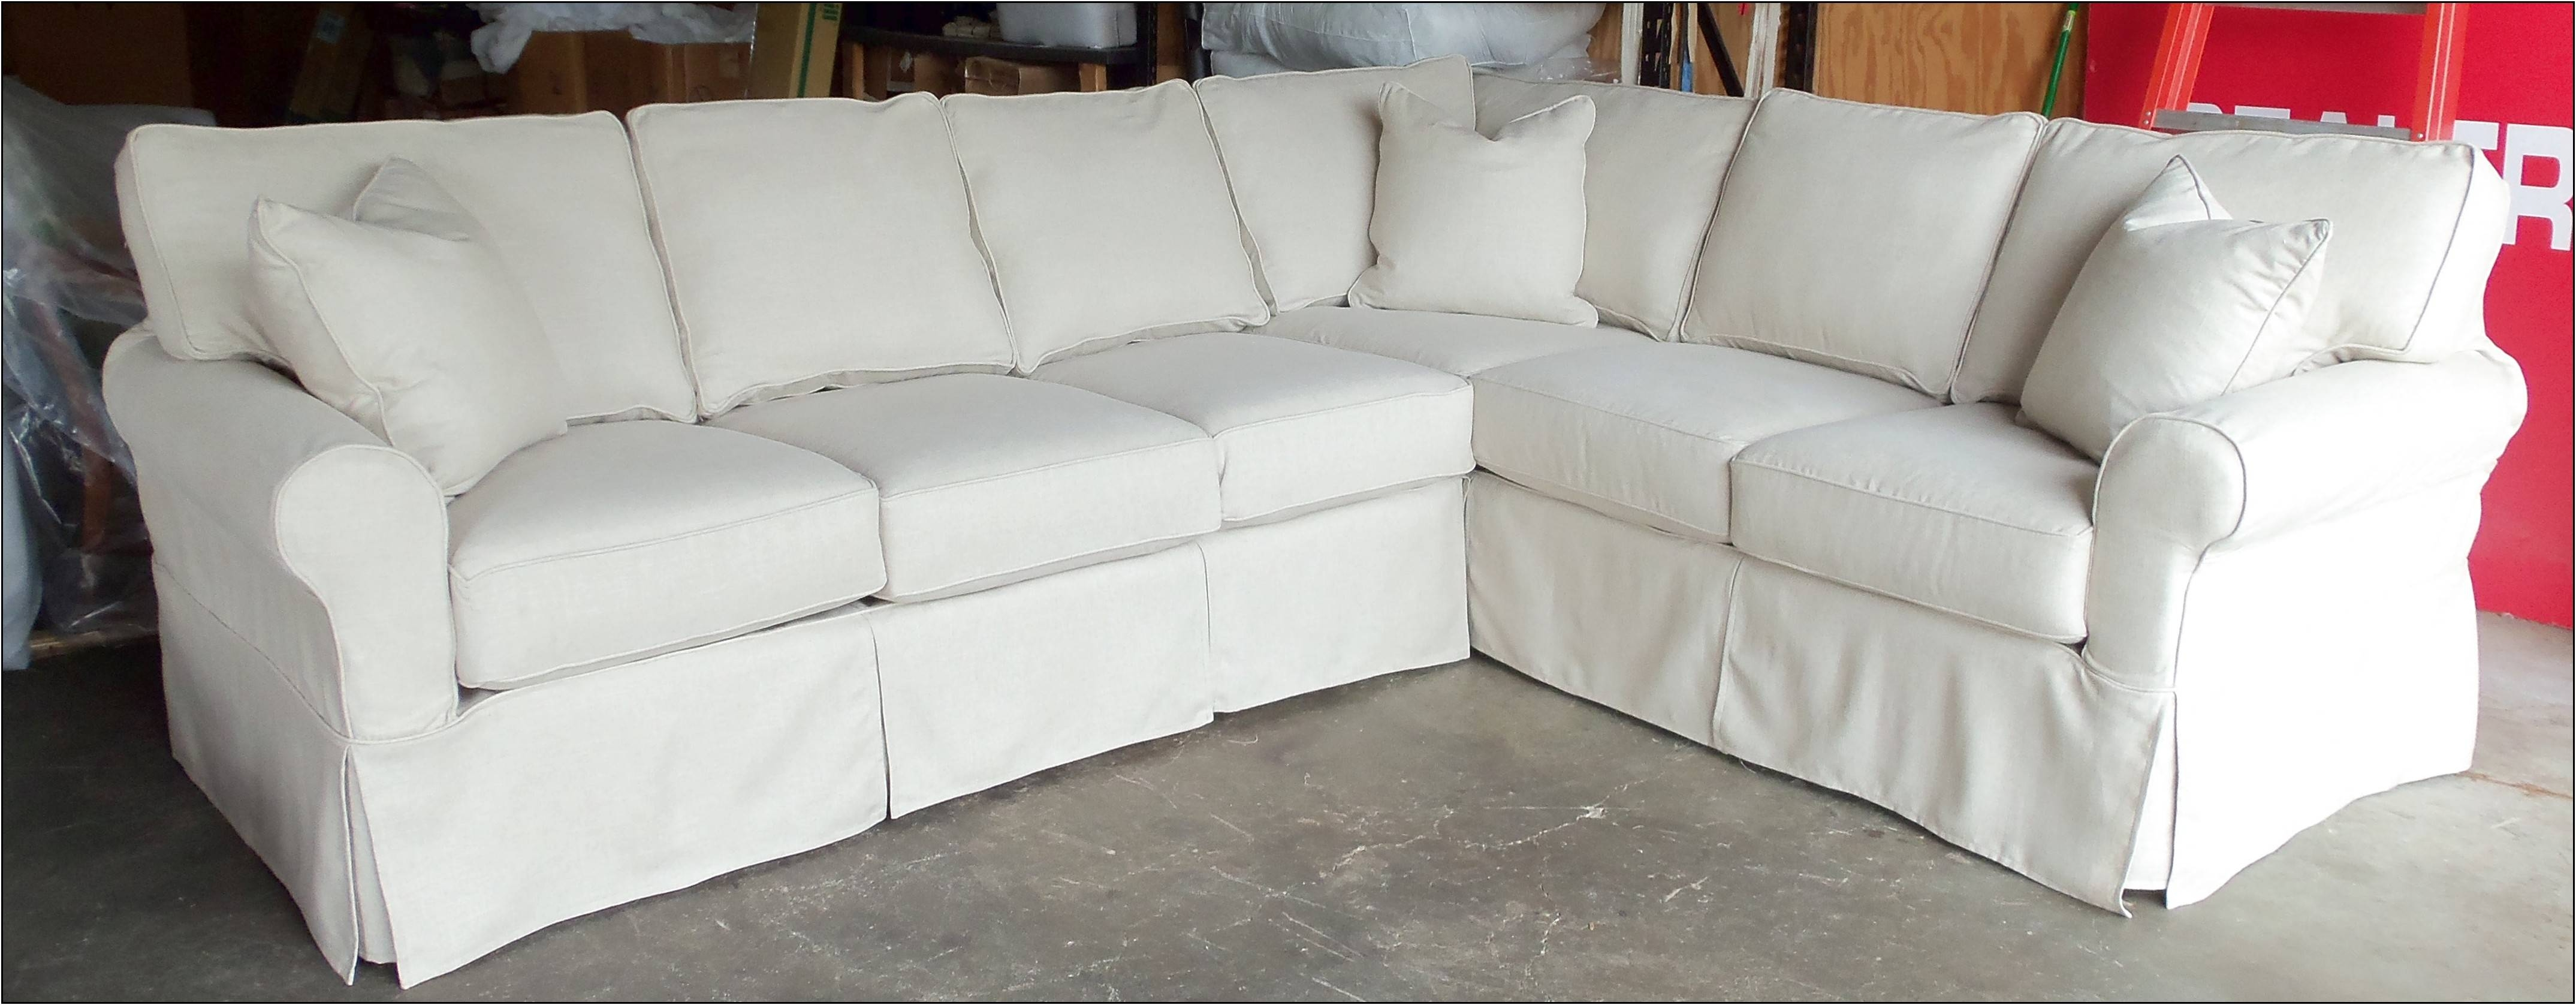 Sofas Center : White Sectional Sofas For Small Spaces Leterwhite with regard to White Sectional Sofa For Sale (Image 26 of 30)